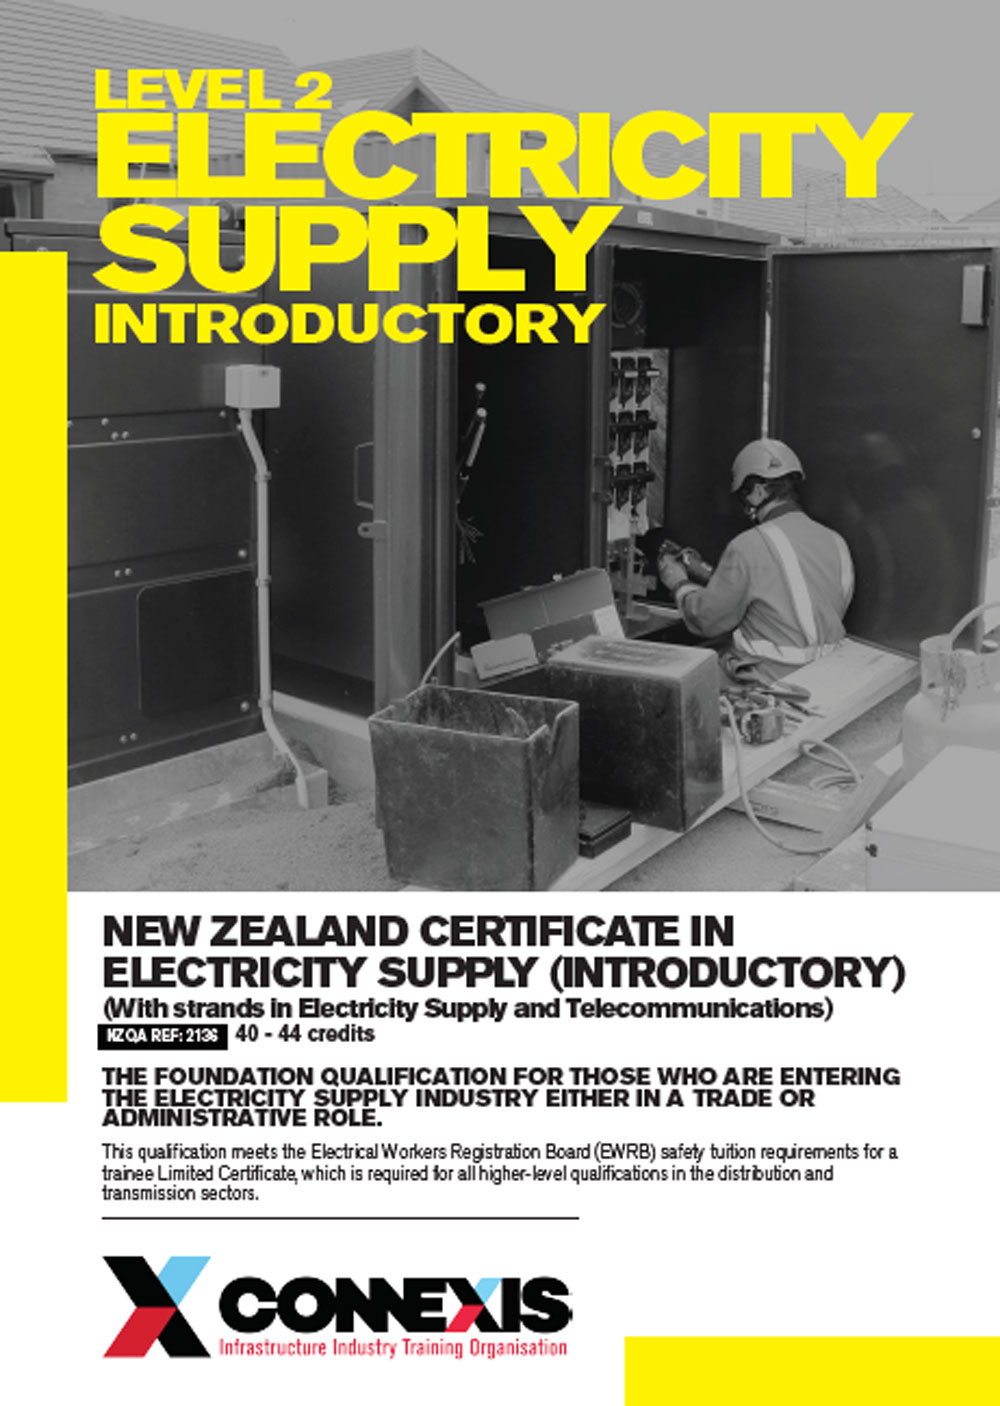 ELECTRICITY SUPPLY (INTRODUCTORY)